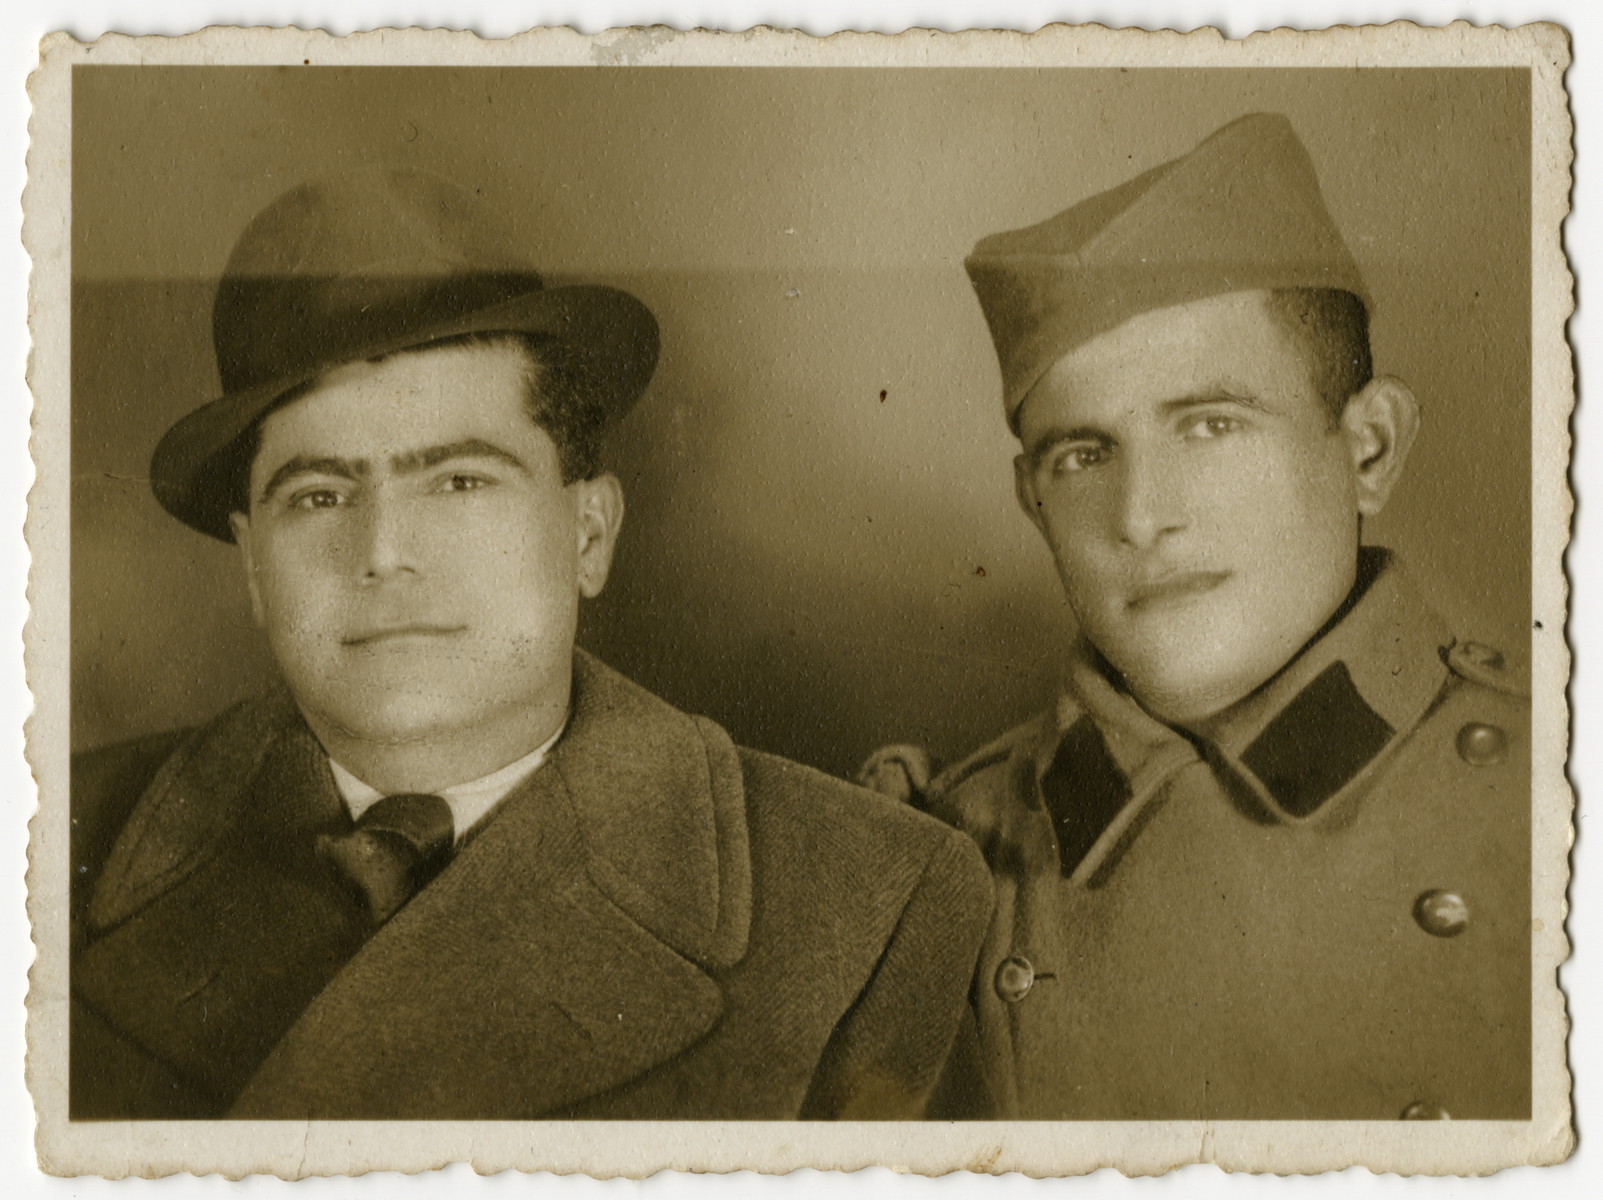 David Levi, on the right, with his brother Leon Levi who is serving in the Yugoslav army.